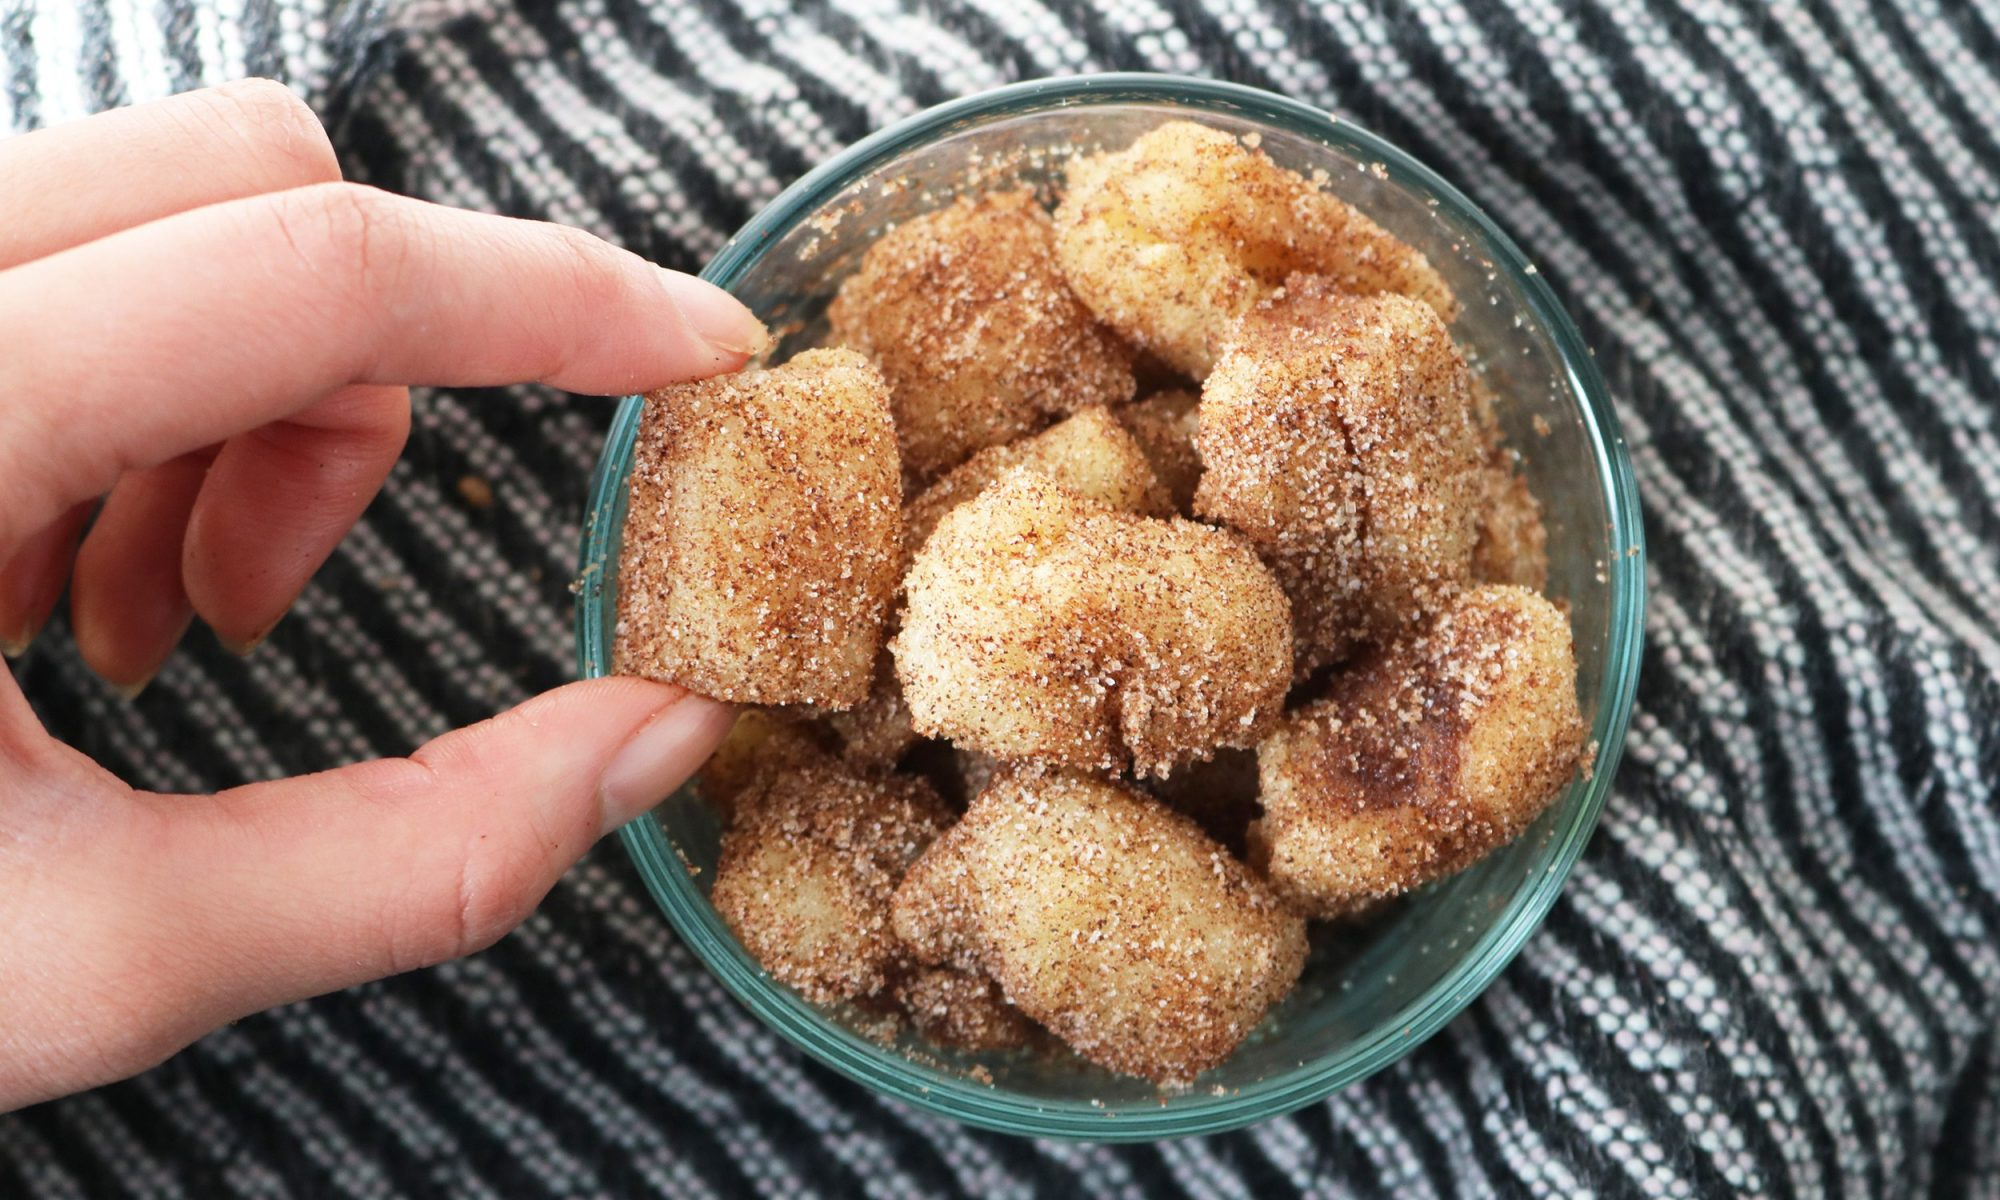 How to Make 24 Mini Churros in 15 Minutes